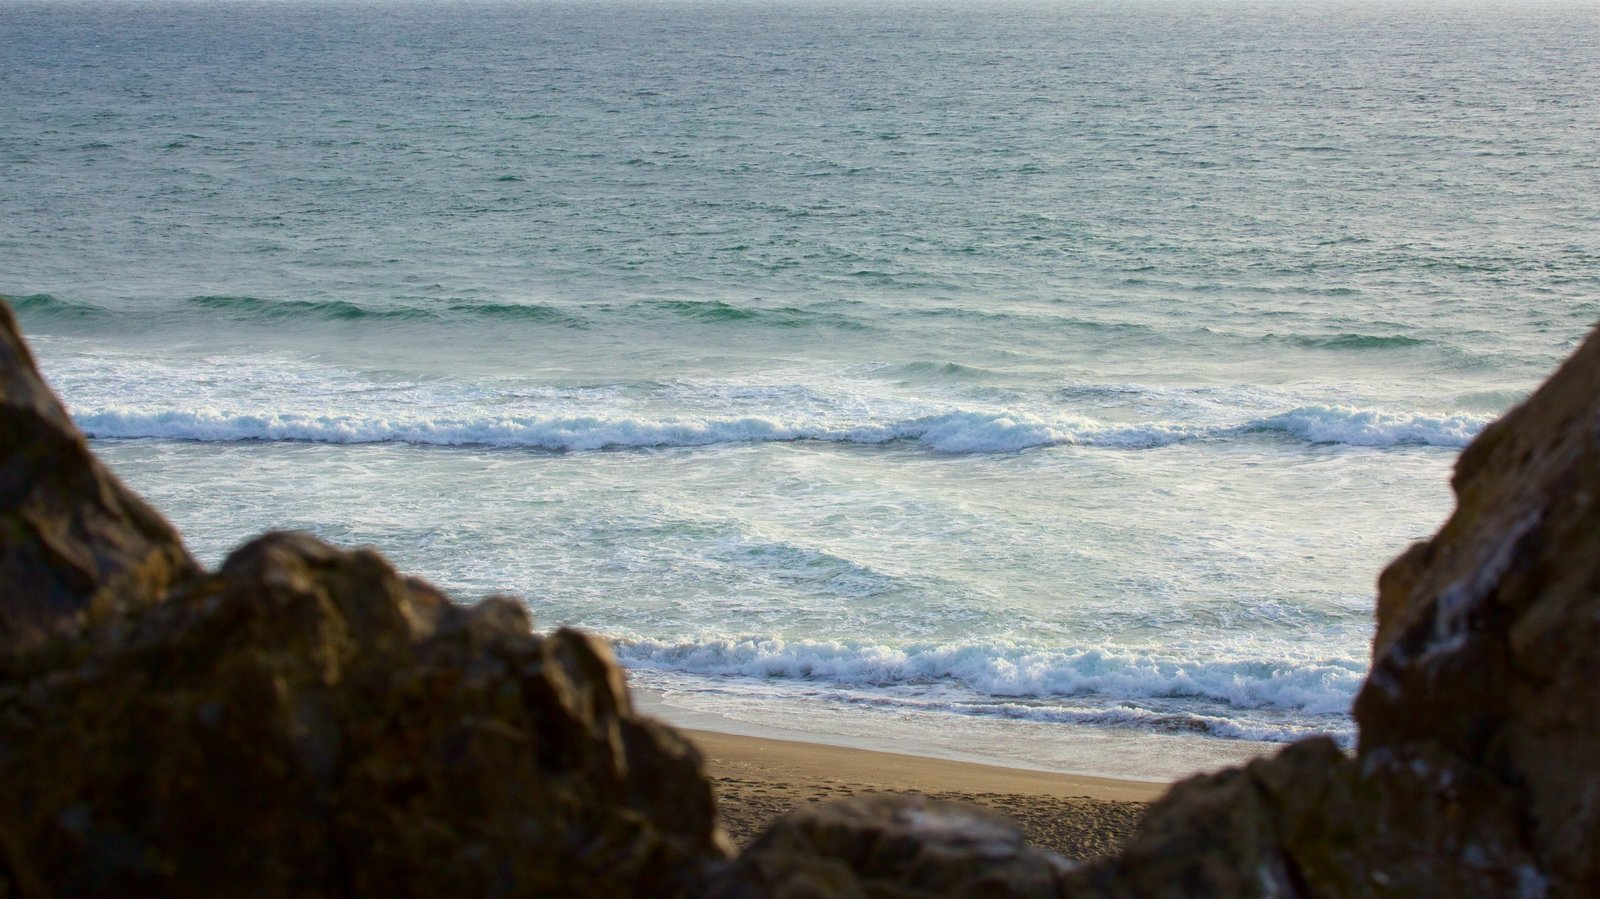 Sonoma Valley which includes general coastal views and waves